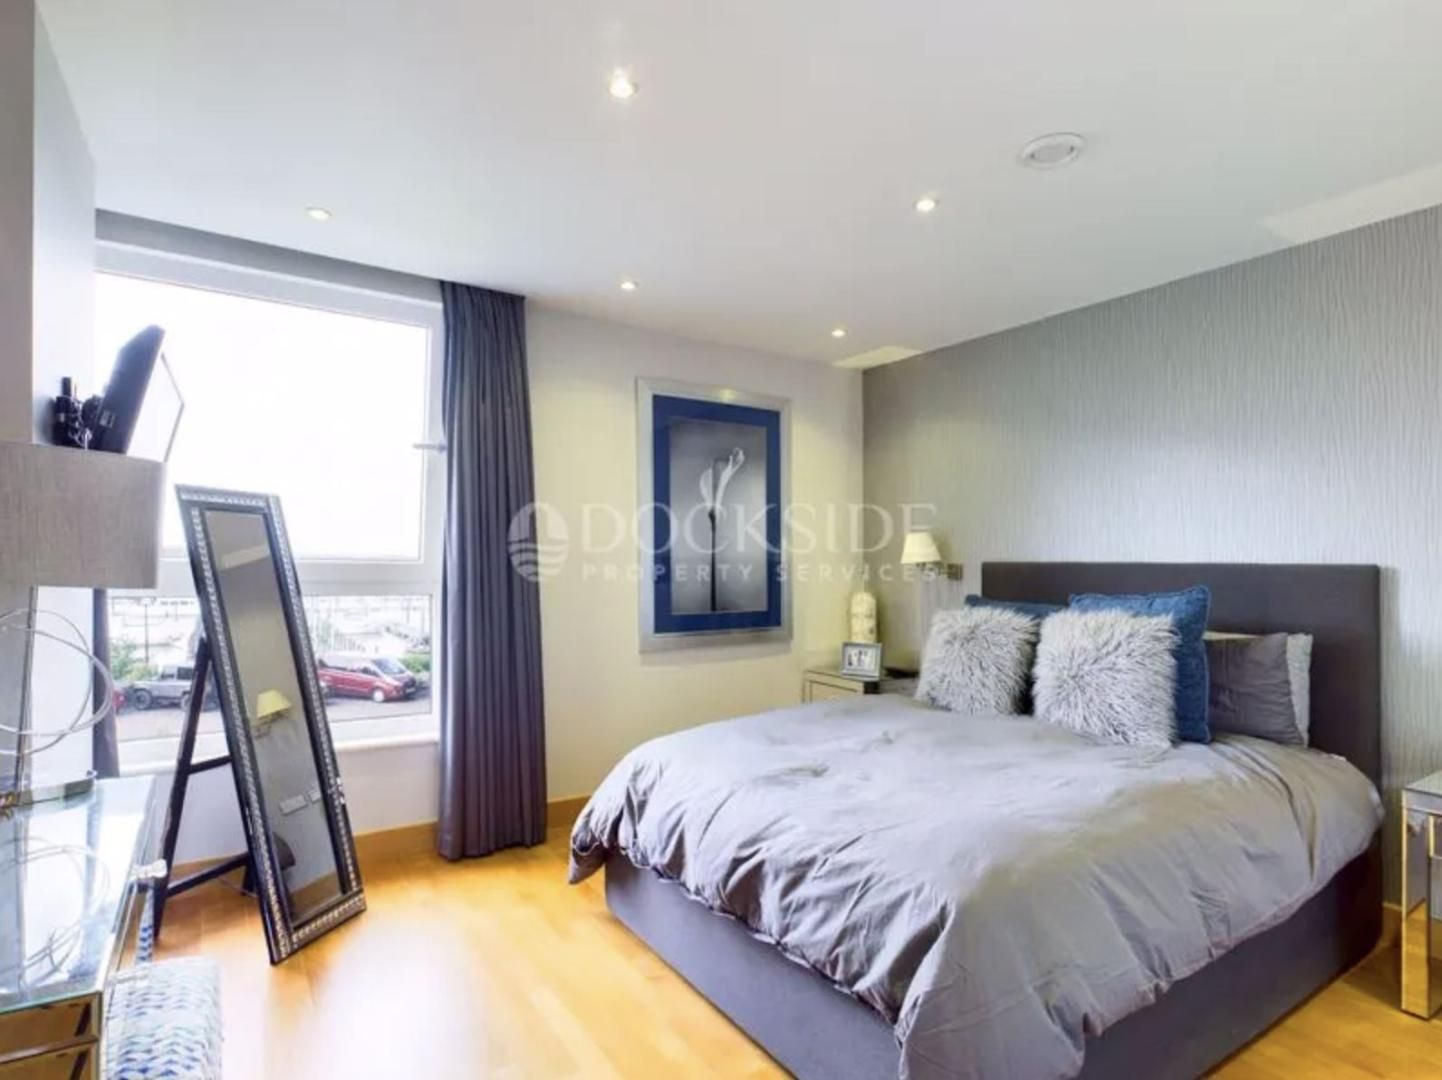 5 bed  for sale in The Hamptons  - Property Image 4